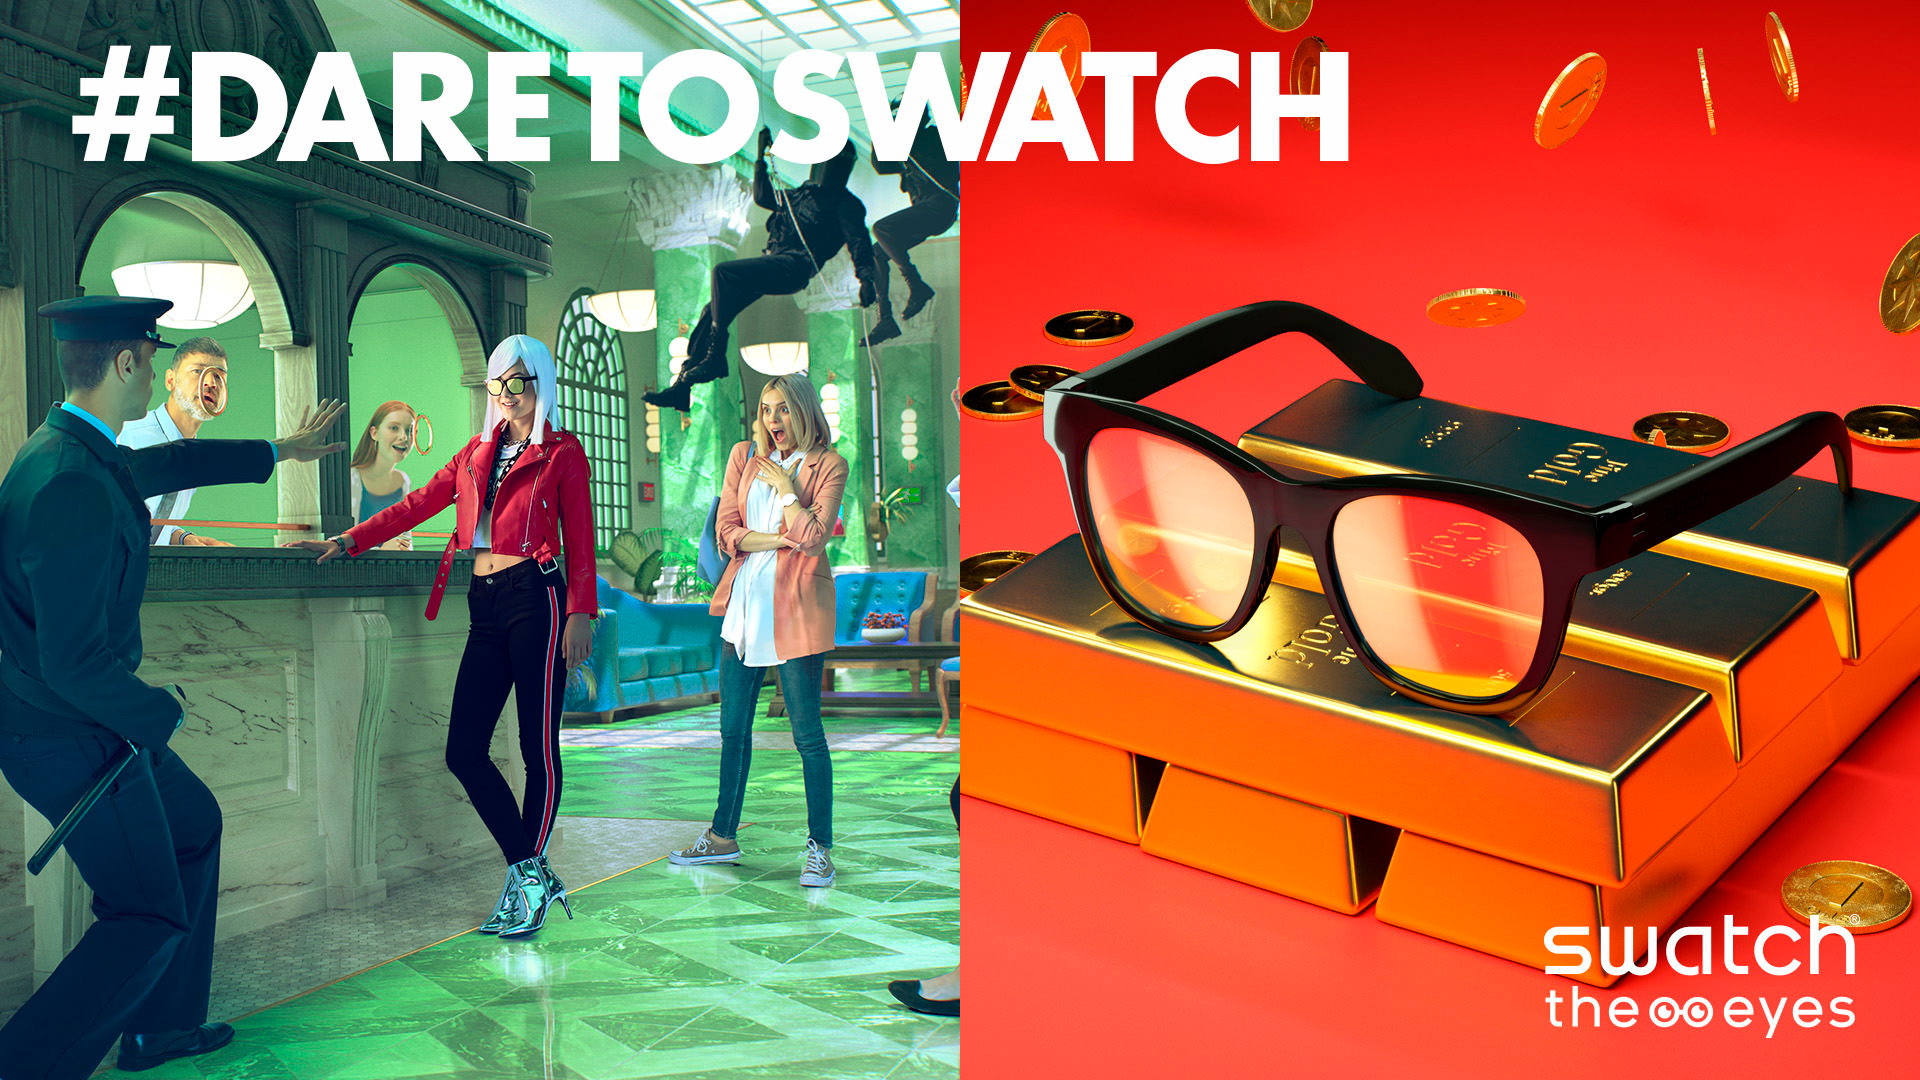 Swatch-advertising-photography-1-1